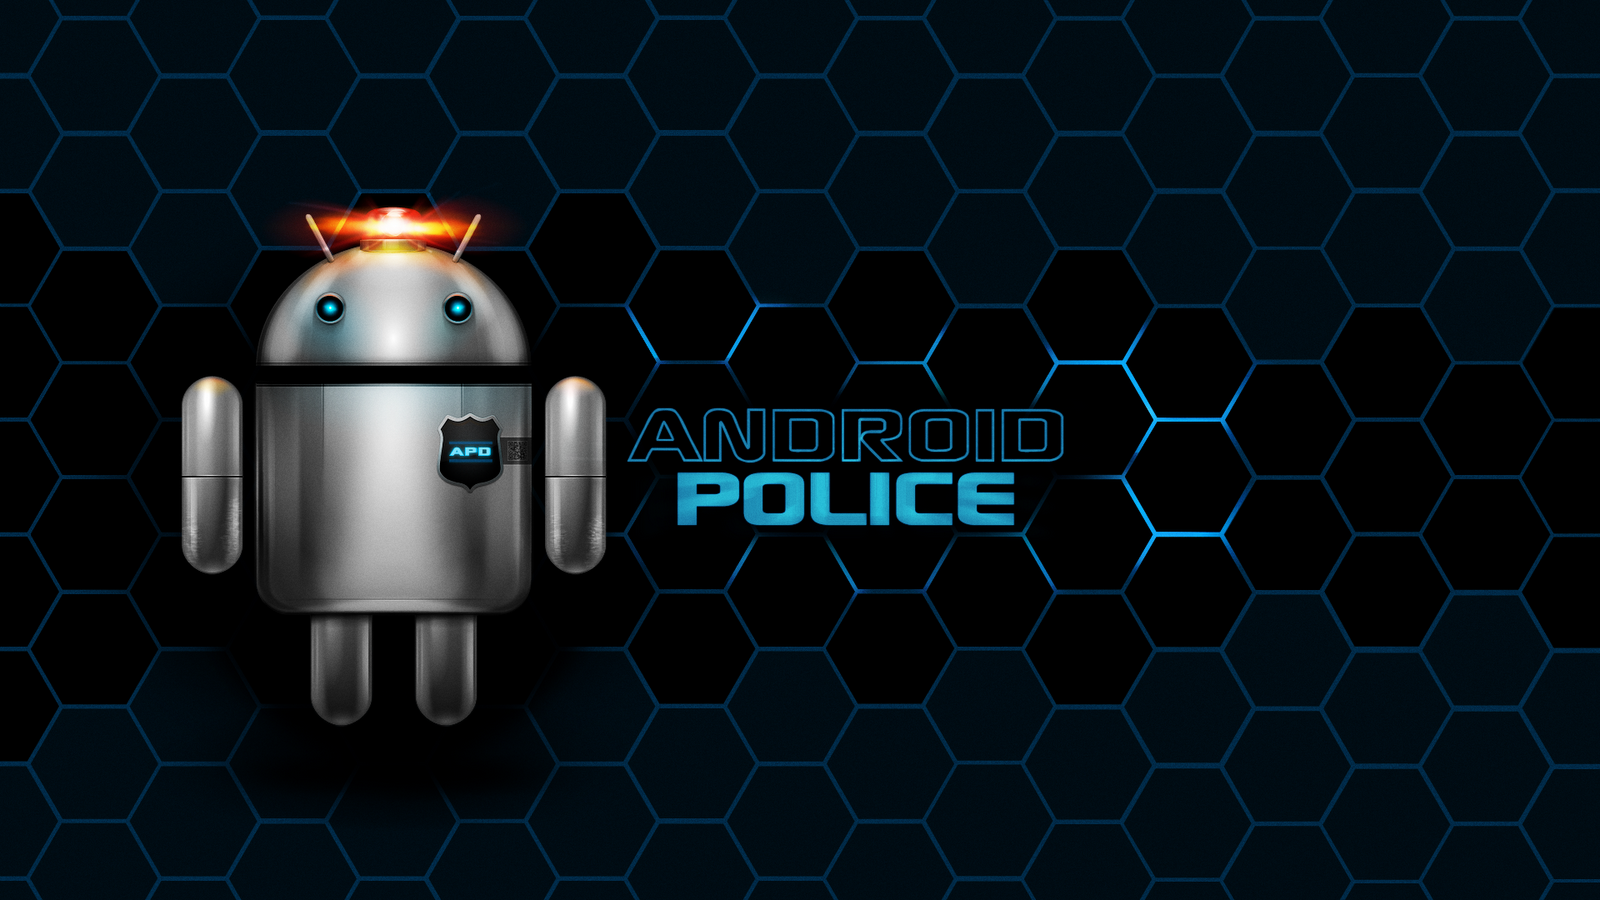 Hd wallpaper android - Best Robot Android Police Hd Wallpaper Desktop 2436 Wallpaper